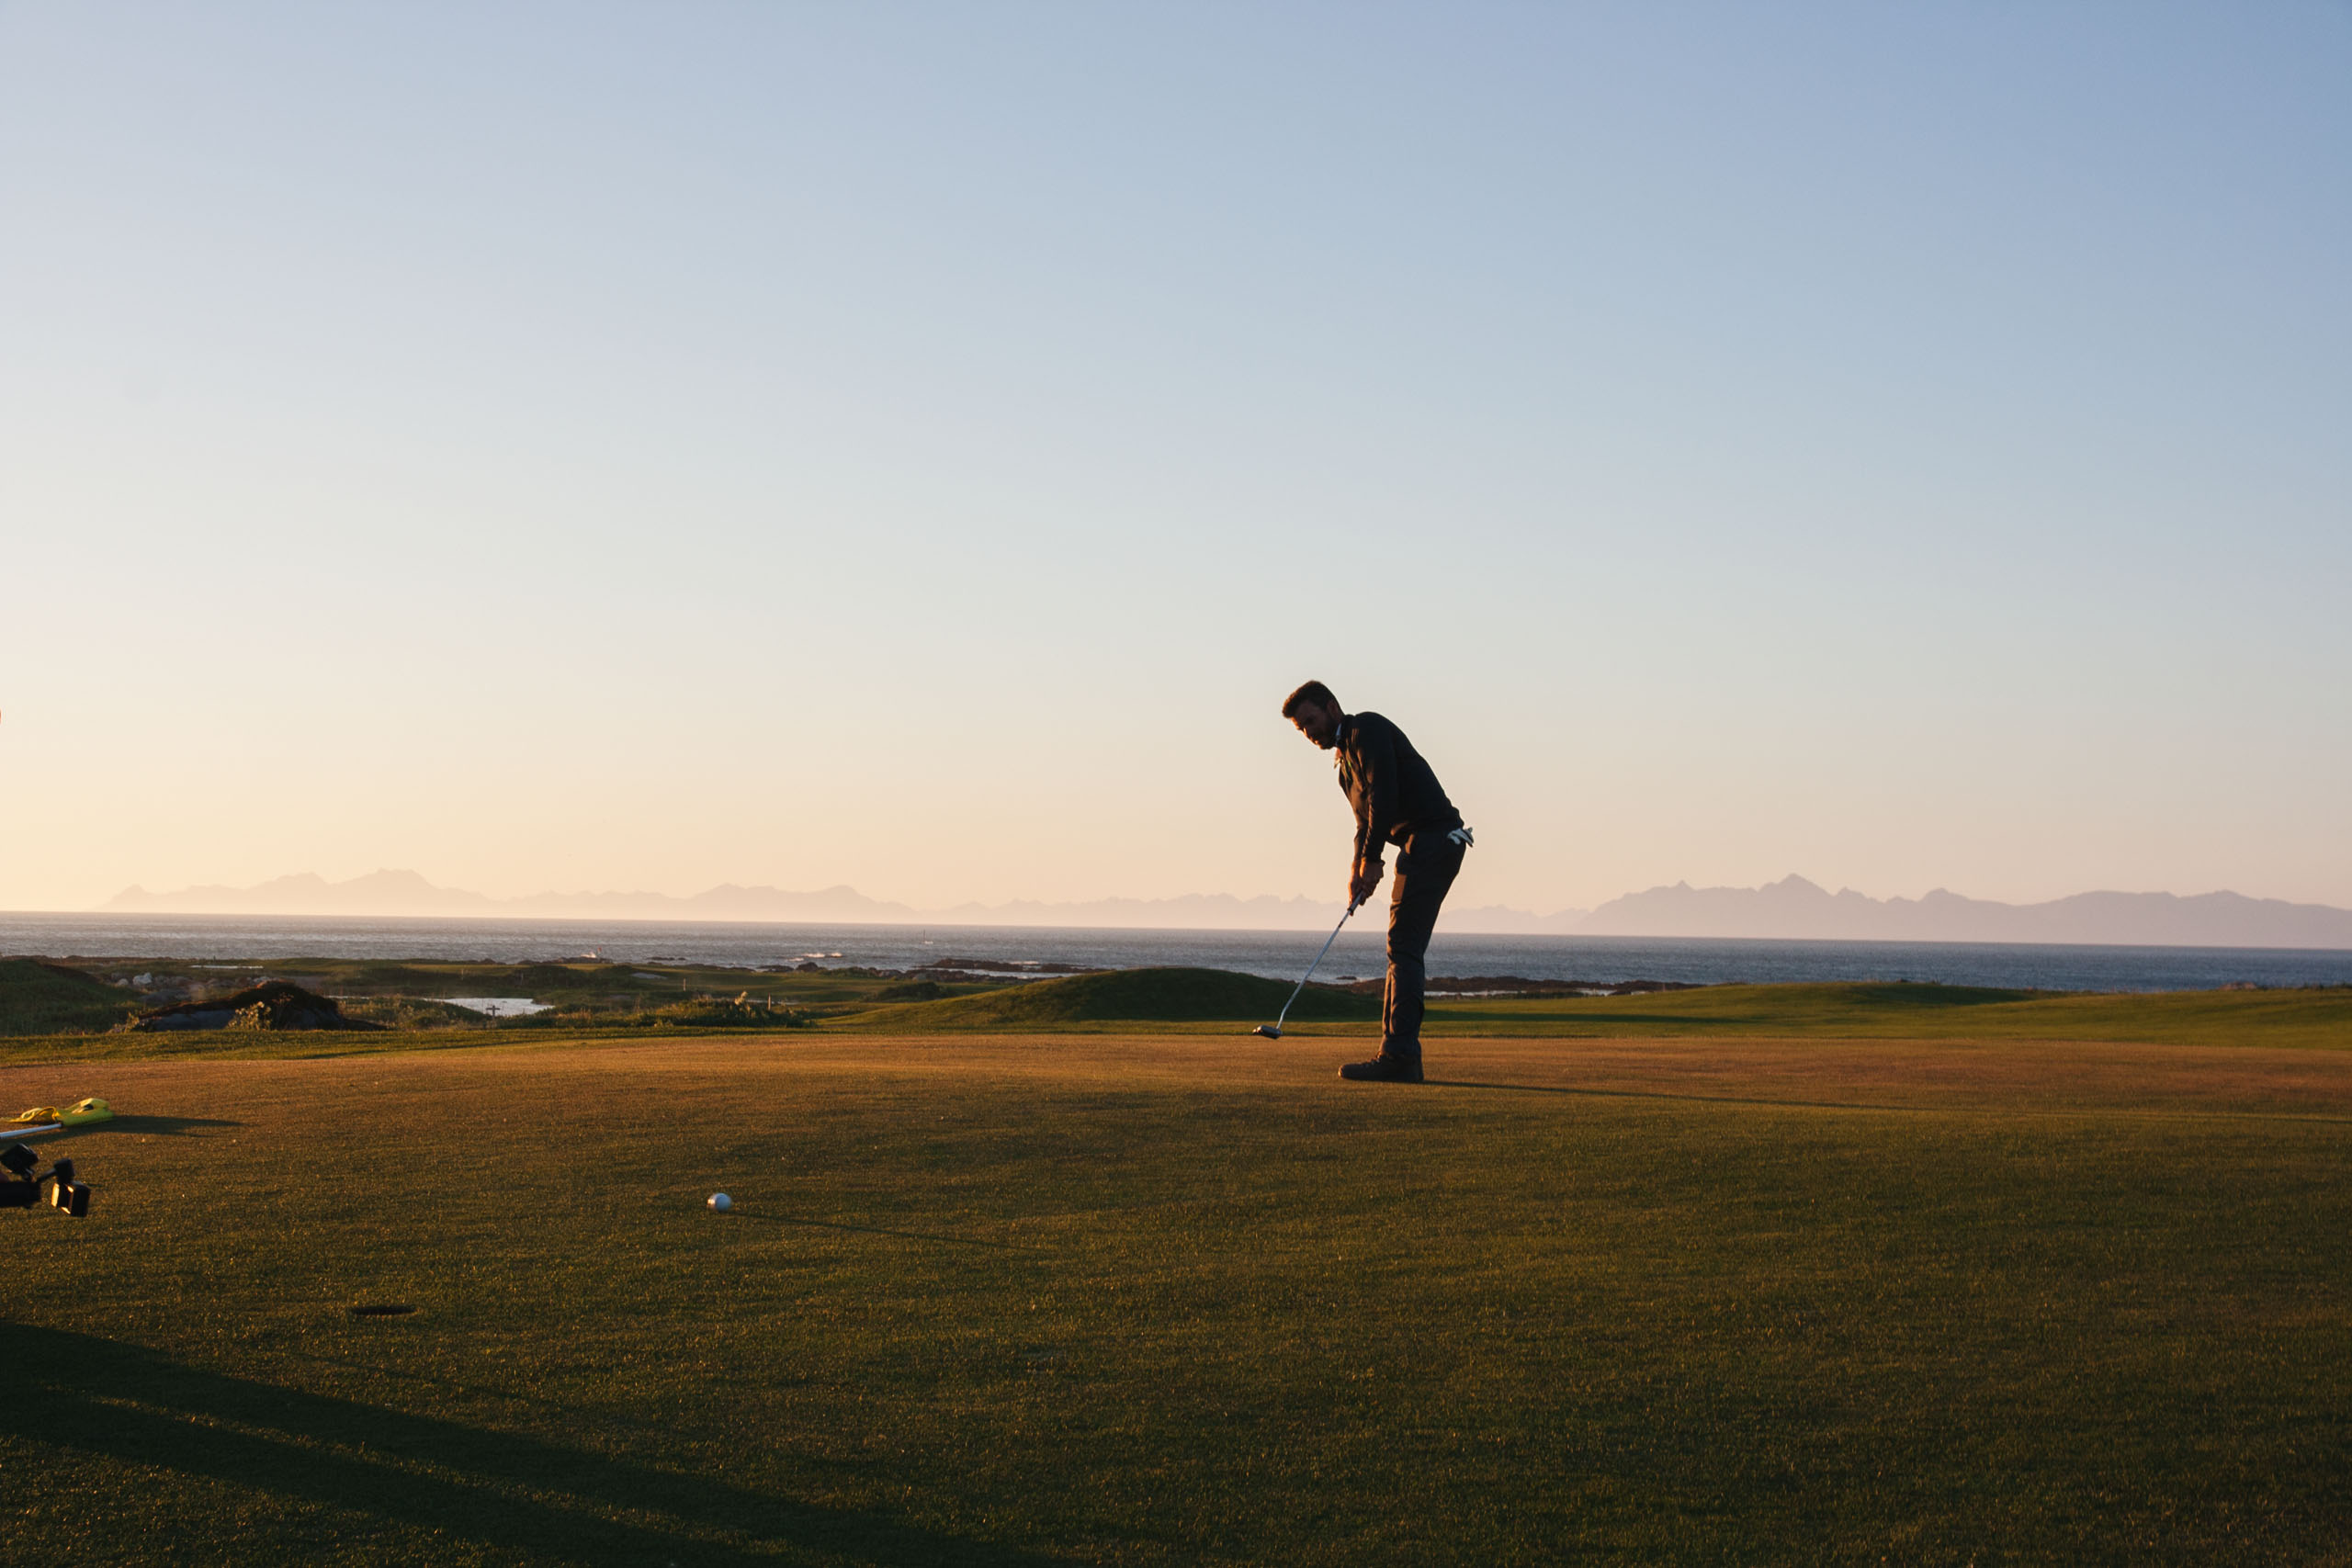 Solomon at Lofoten Links